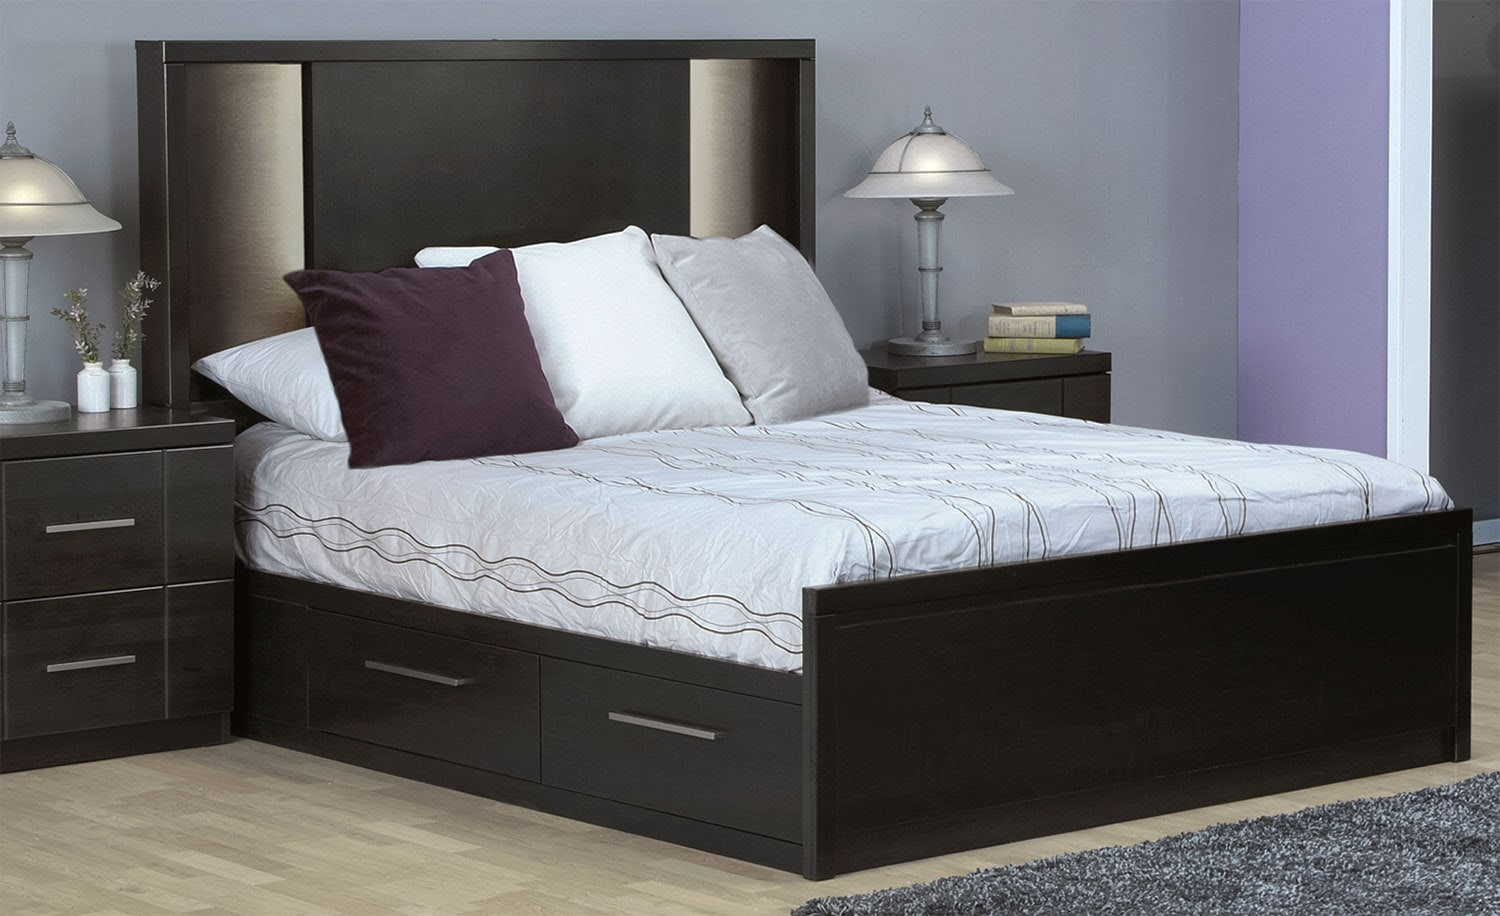 Seville Queen Storage Bed - Charcoal | Leon's